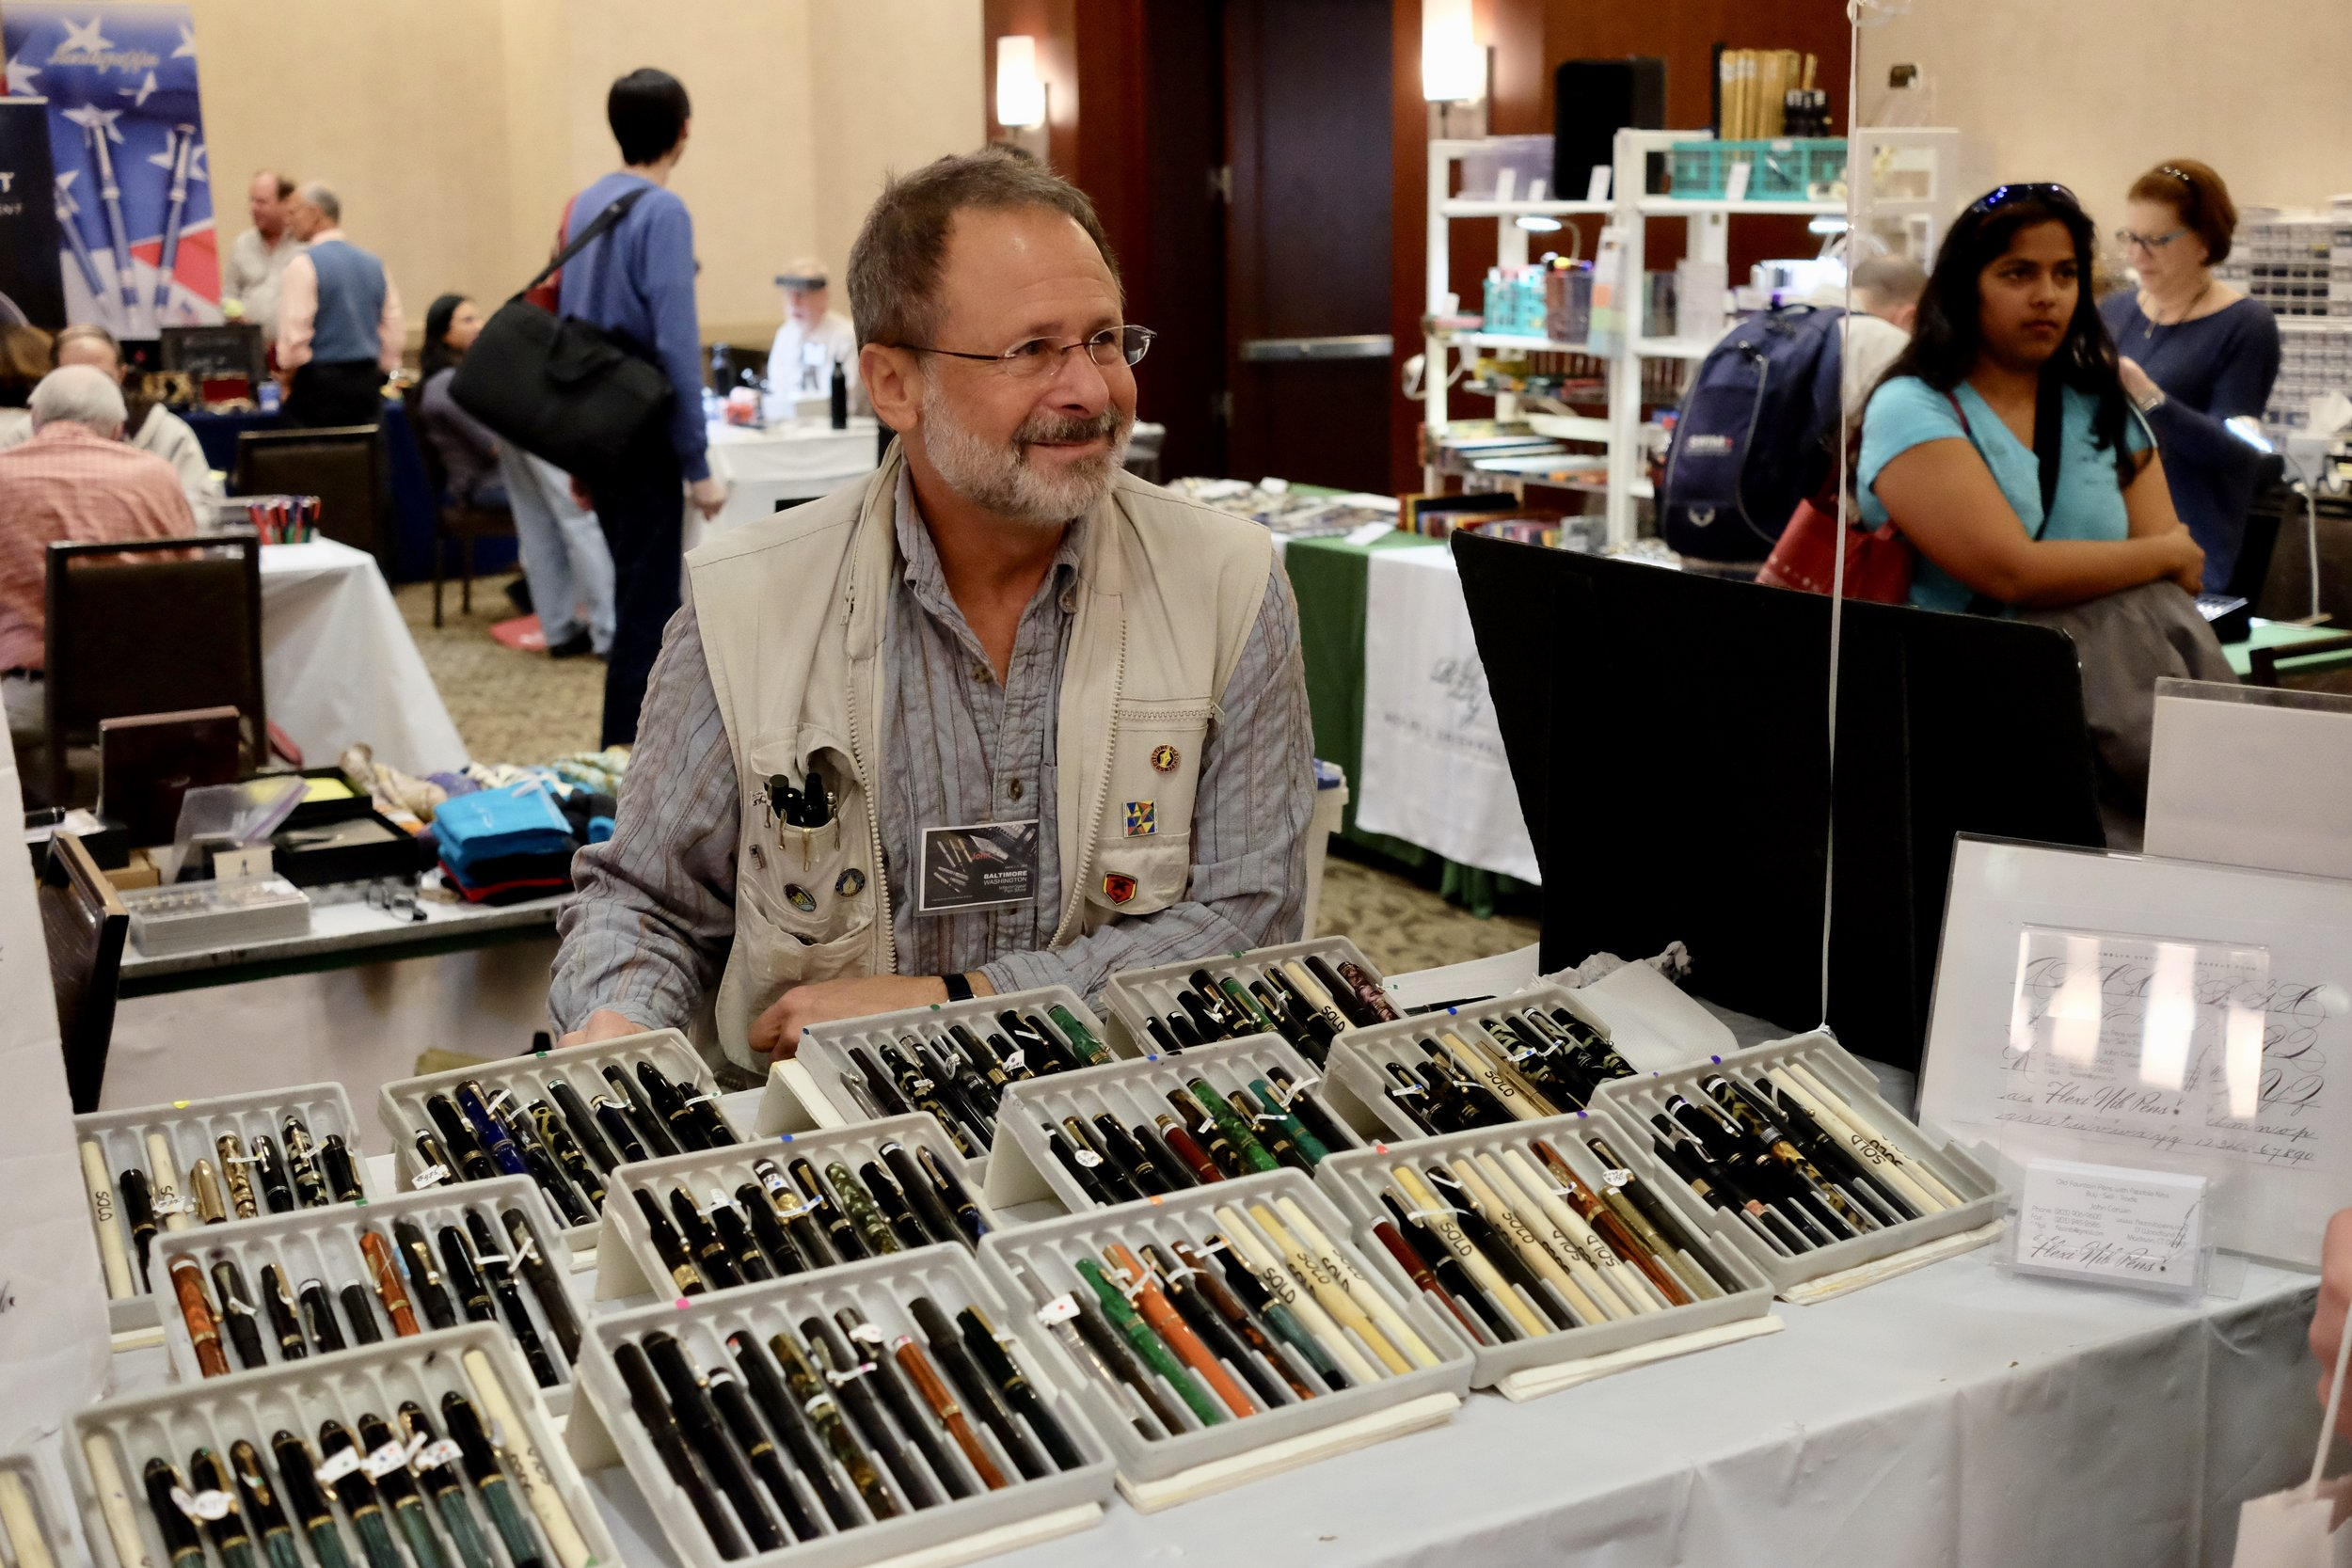 John Corwin and His Flex Pens